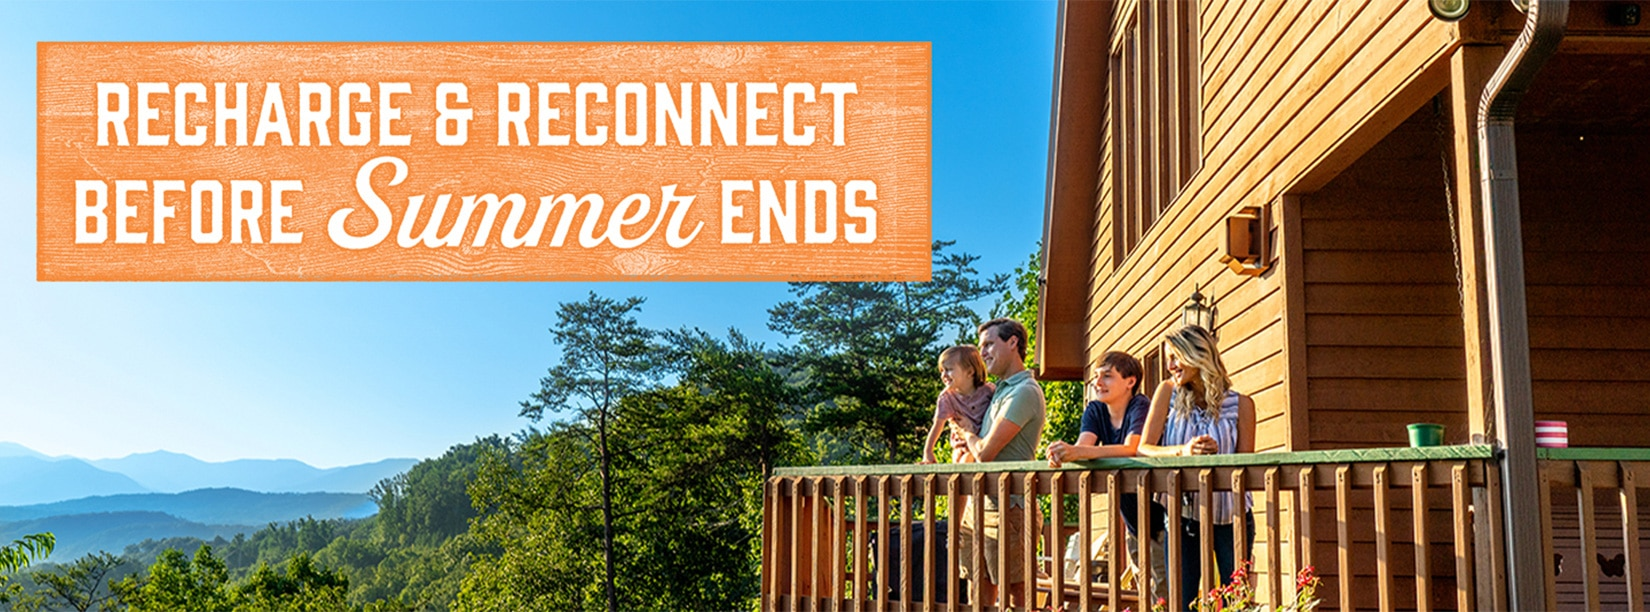 Recharge & Reconnect Before Summer Ends